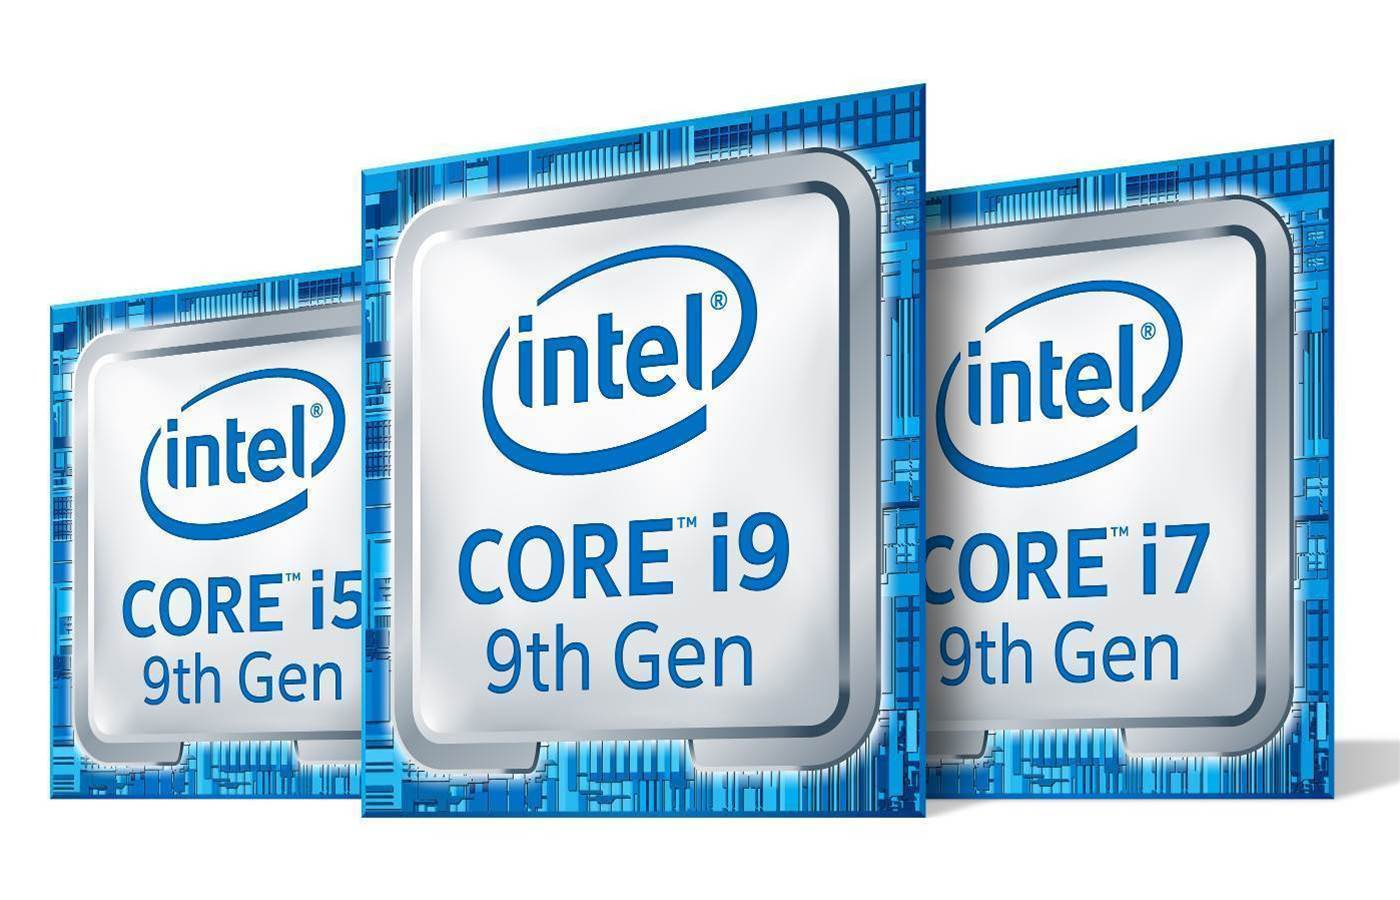 What you need to know about Intel's new chips